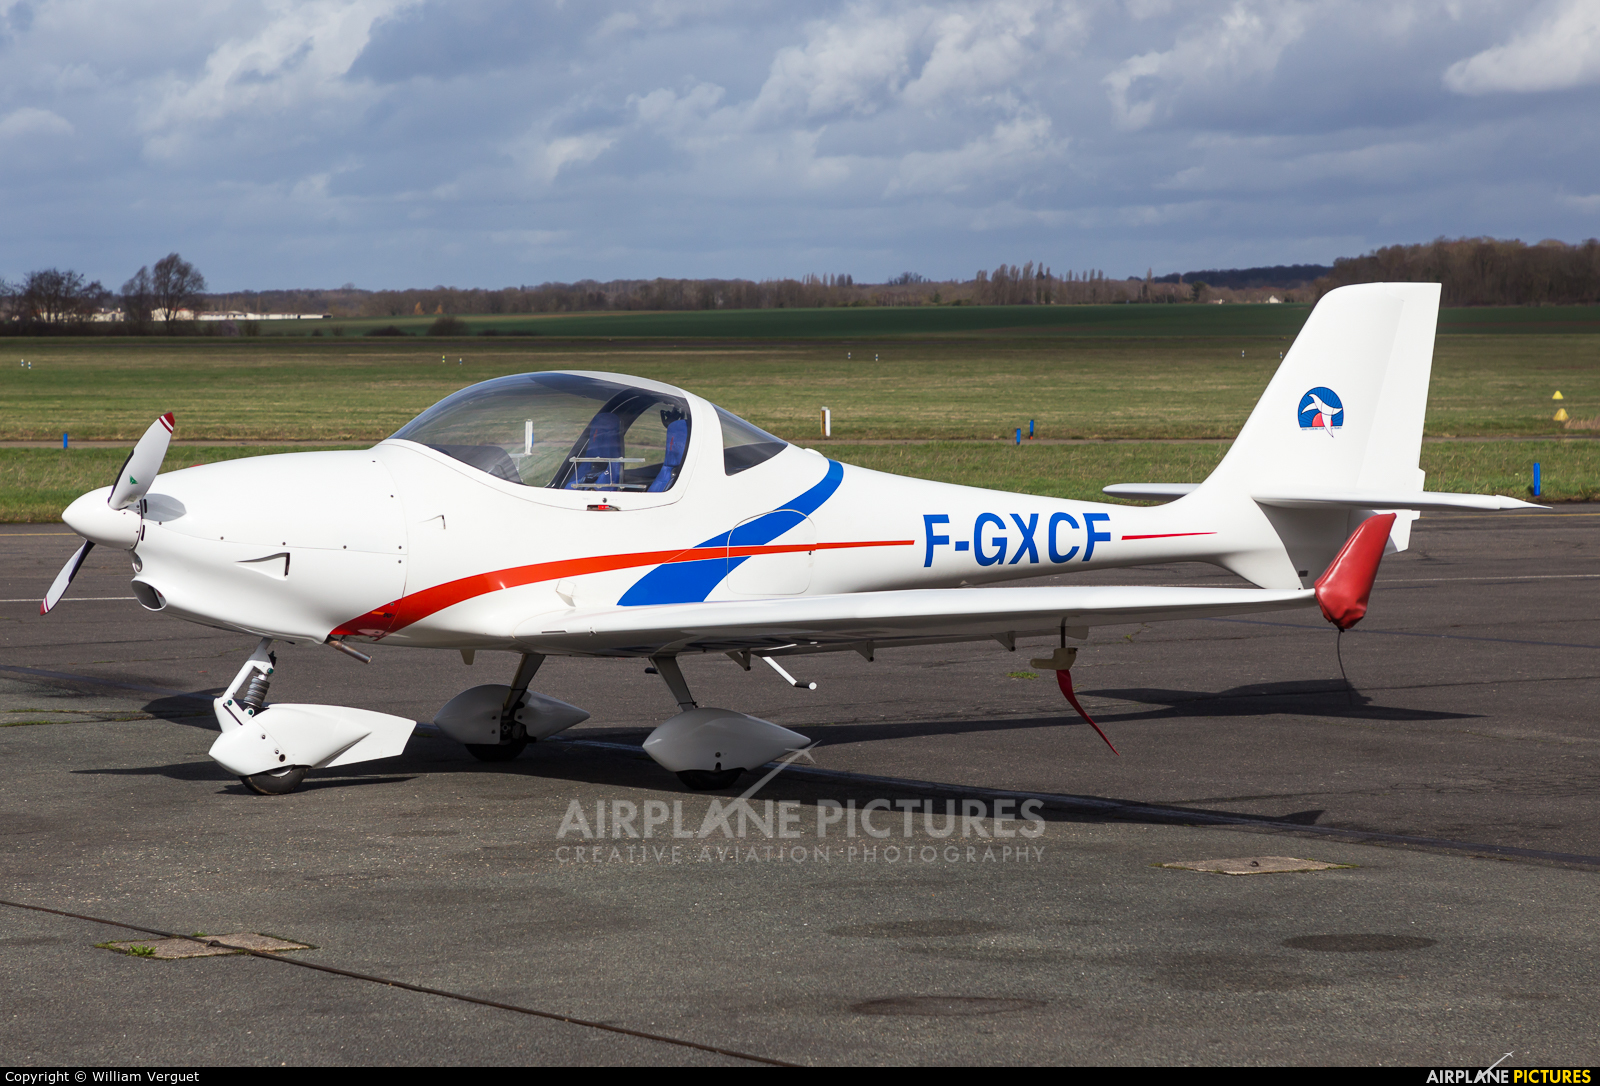 Private F-GXCF aircraft at Toussus-Le-Noble